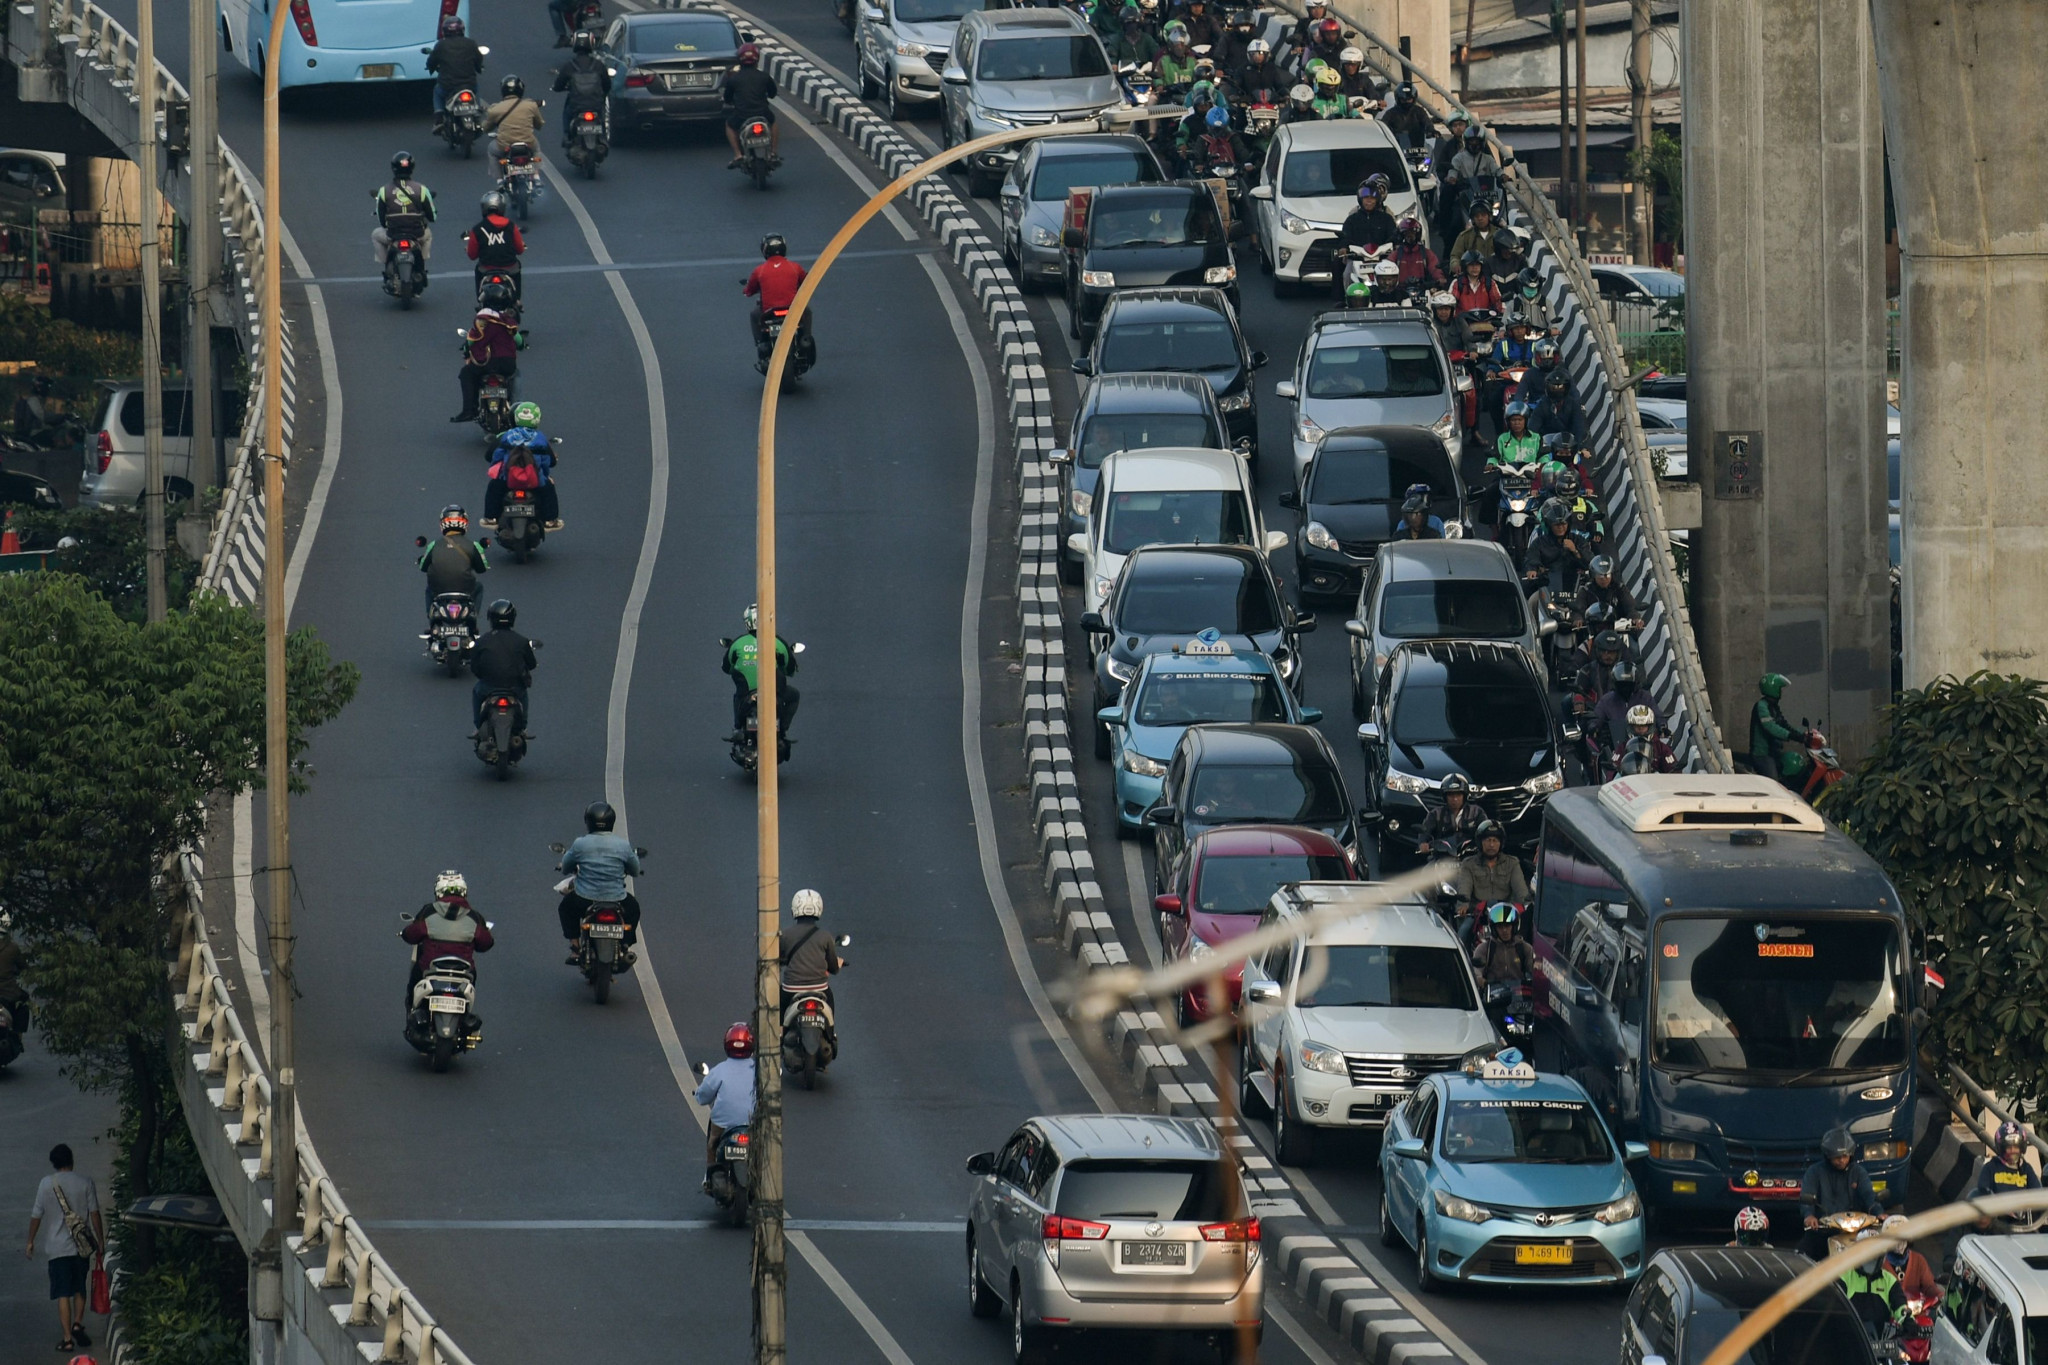 The Moovit app will help guide tourists and locals alike through Jakarta's notorious traffic ©Getty Images